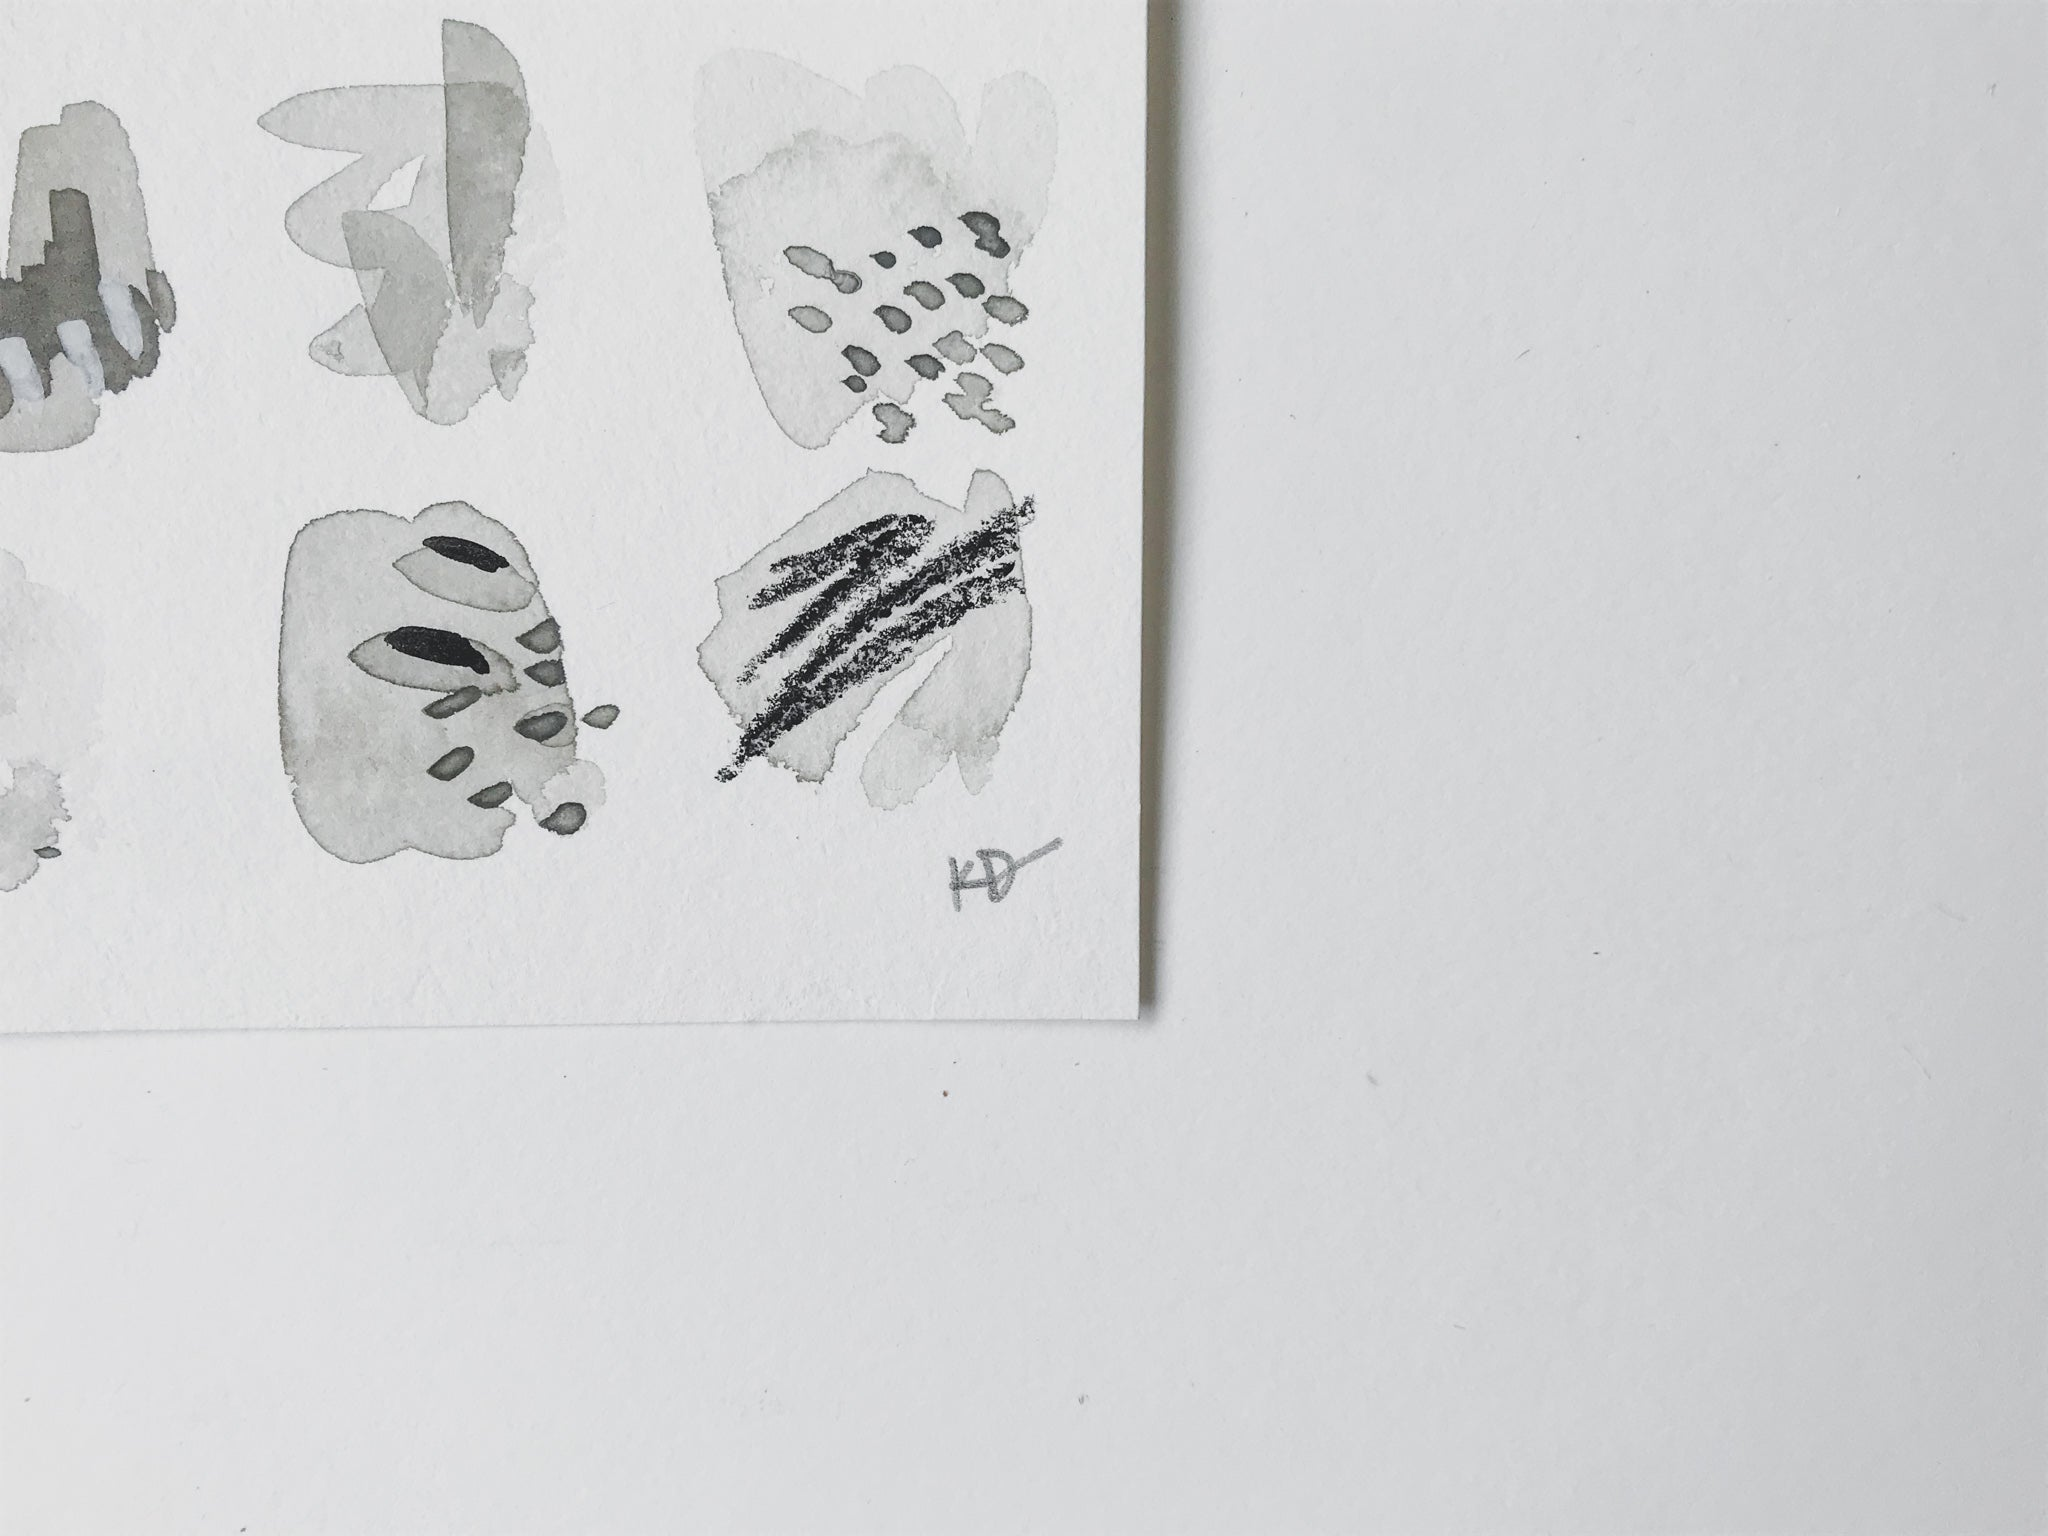 Neutral Series 34 - minimal abstract 5x7in watercolor on paper by artist Kait DeWolff of @kaitcreative. $42CAD